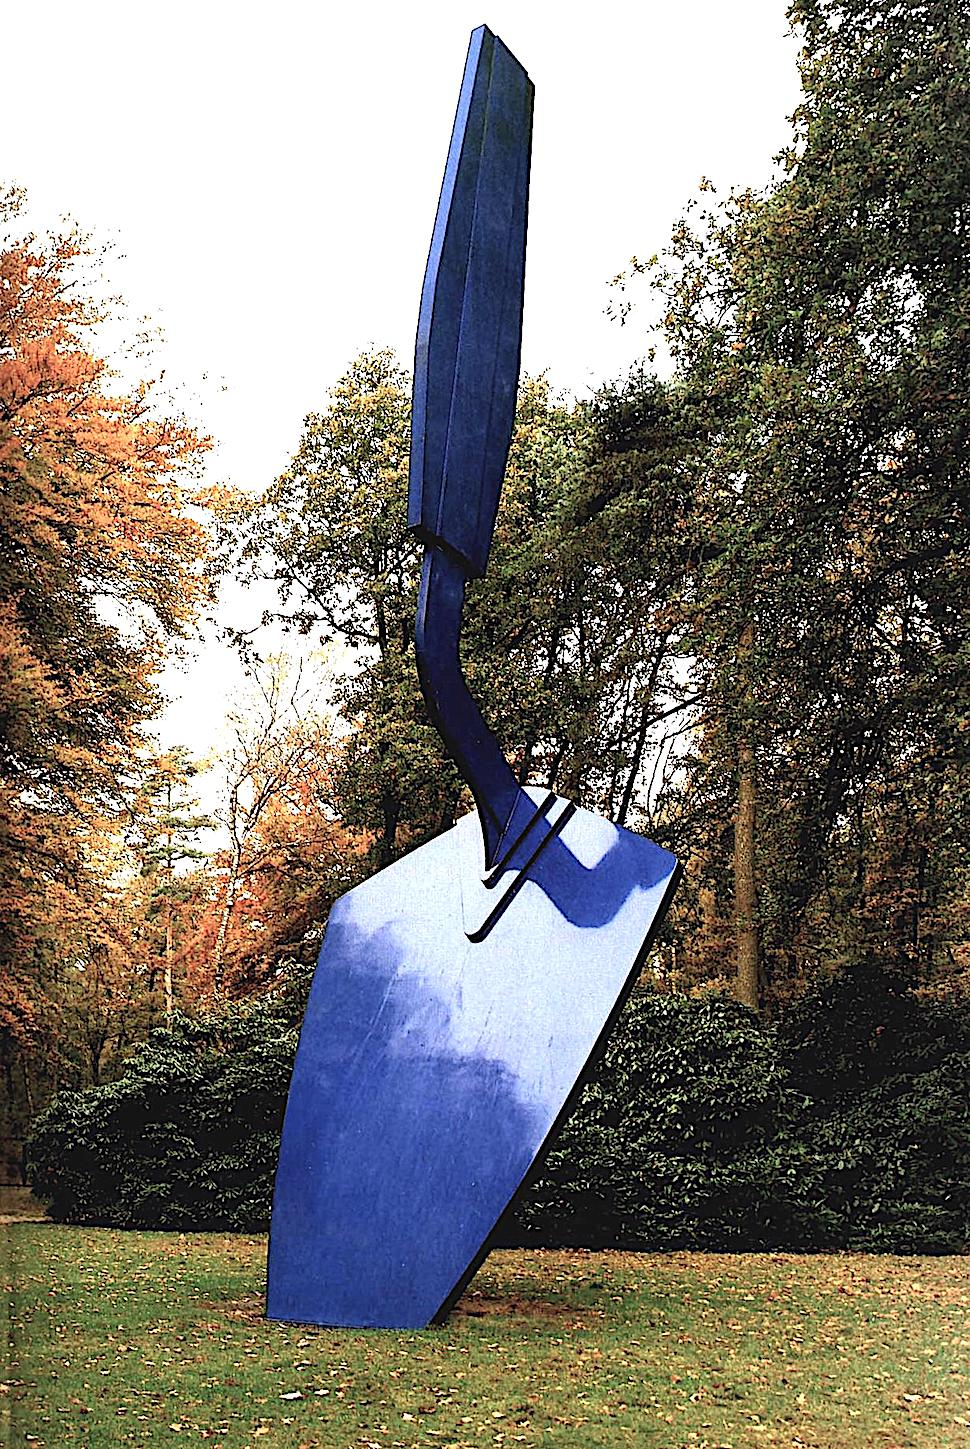 a Claes Oldenburg sculpture of a giant blue trowel stuck in a lawn